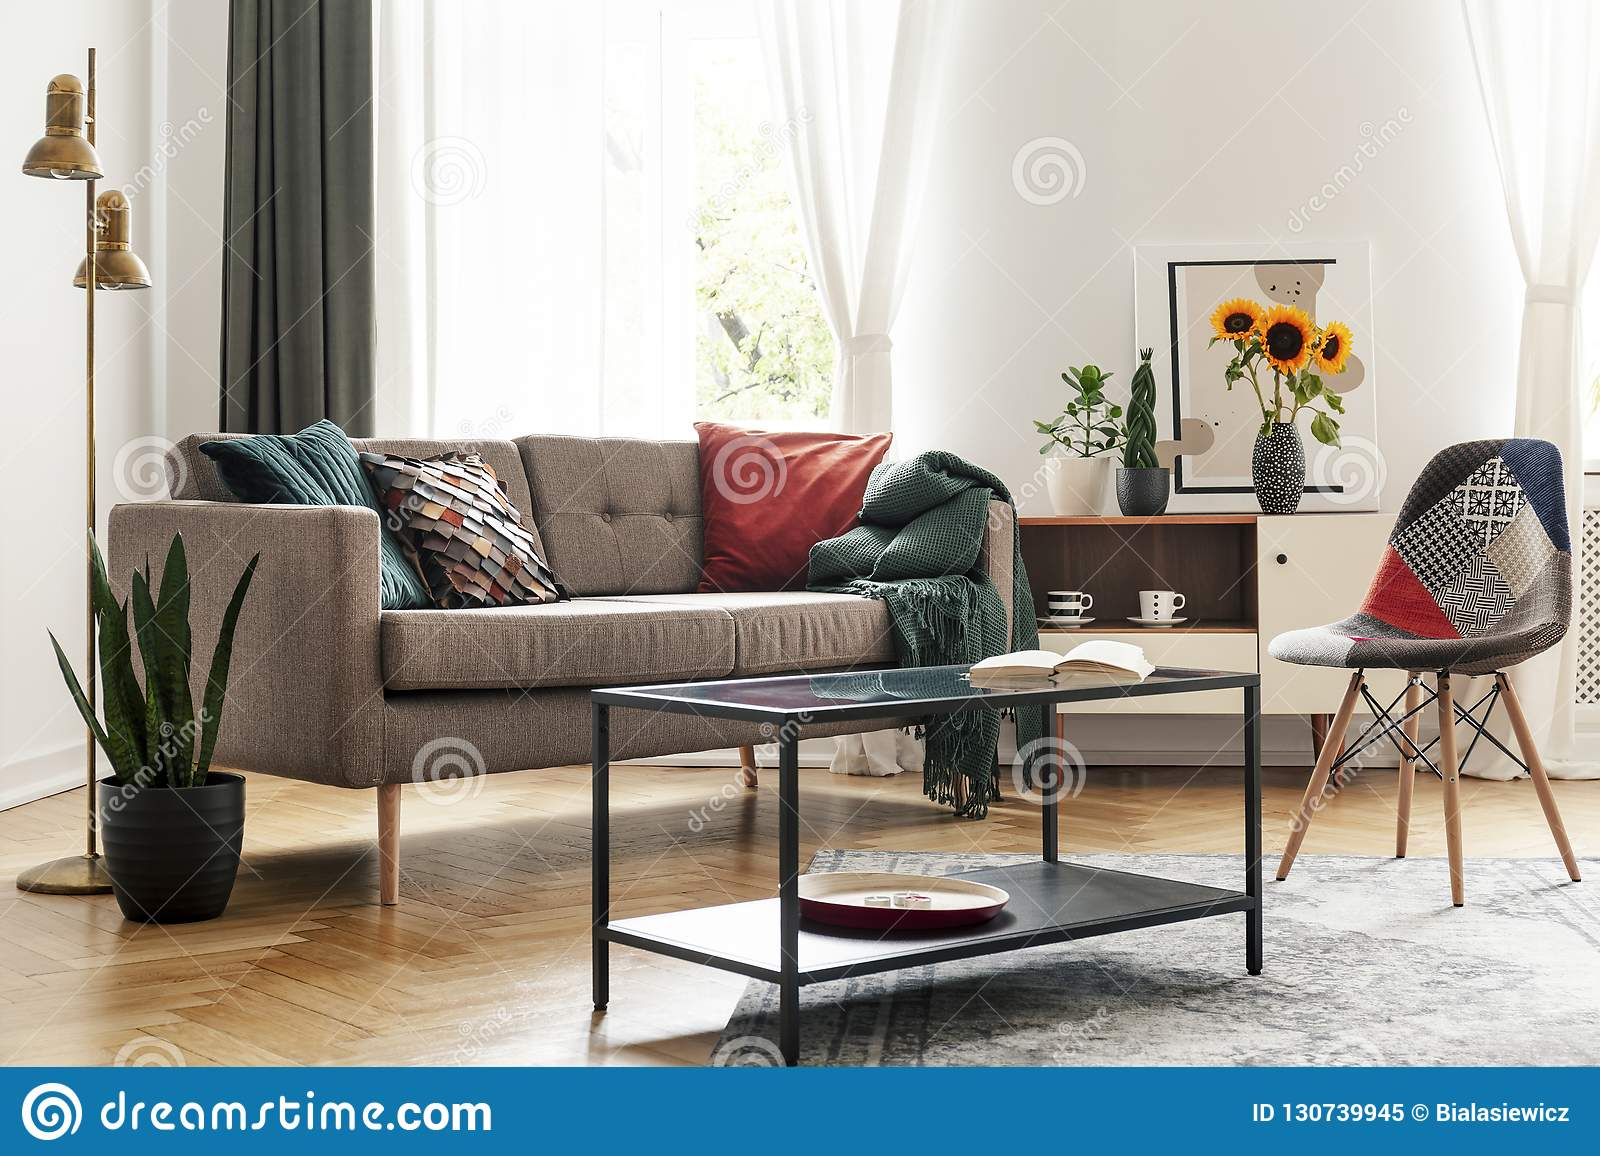 table in front of chair and sofa in living room interior real photo rh dreamstime com round coffee table in front of sofa white sofa table in front of window